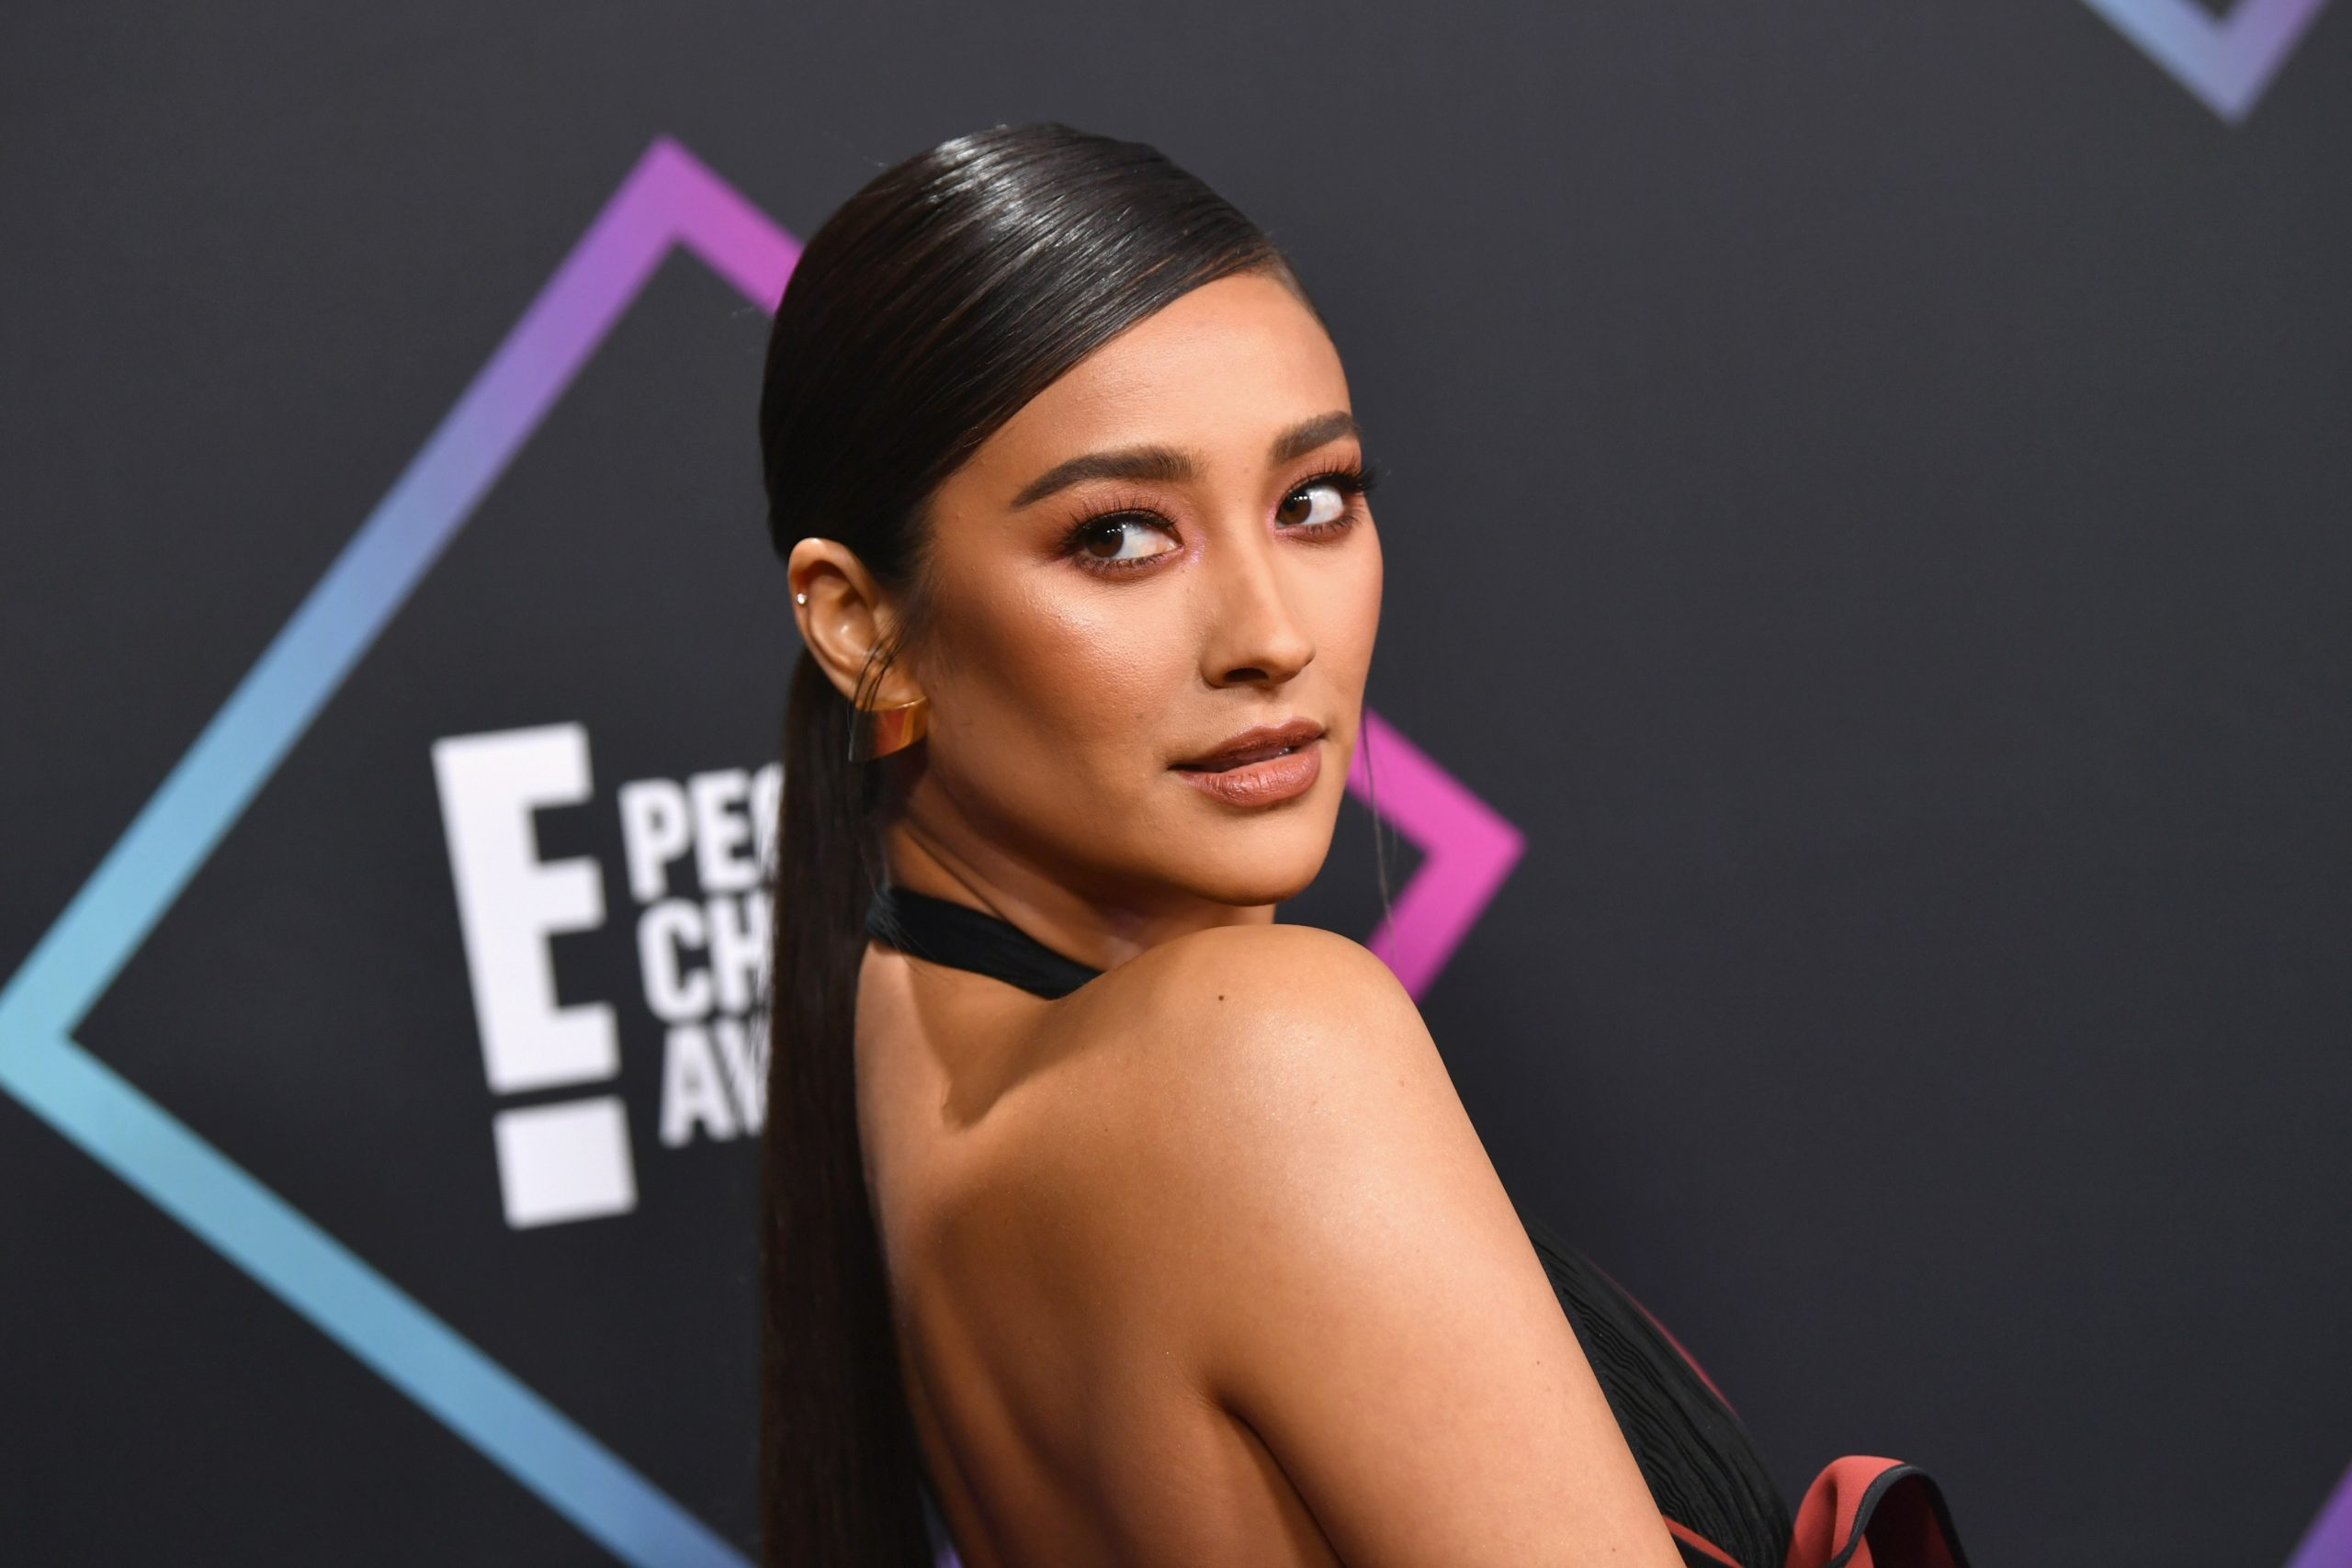 Shay Mitchell Awesome Pics scaled - Shay Mitchell Awesome Pics